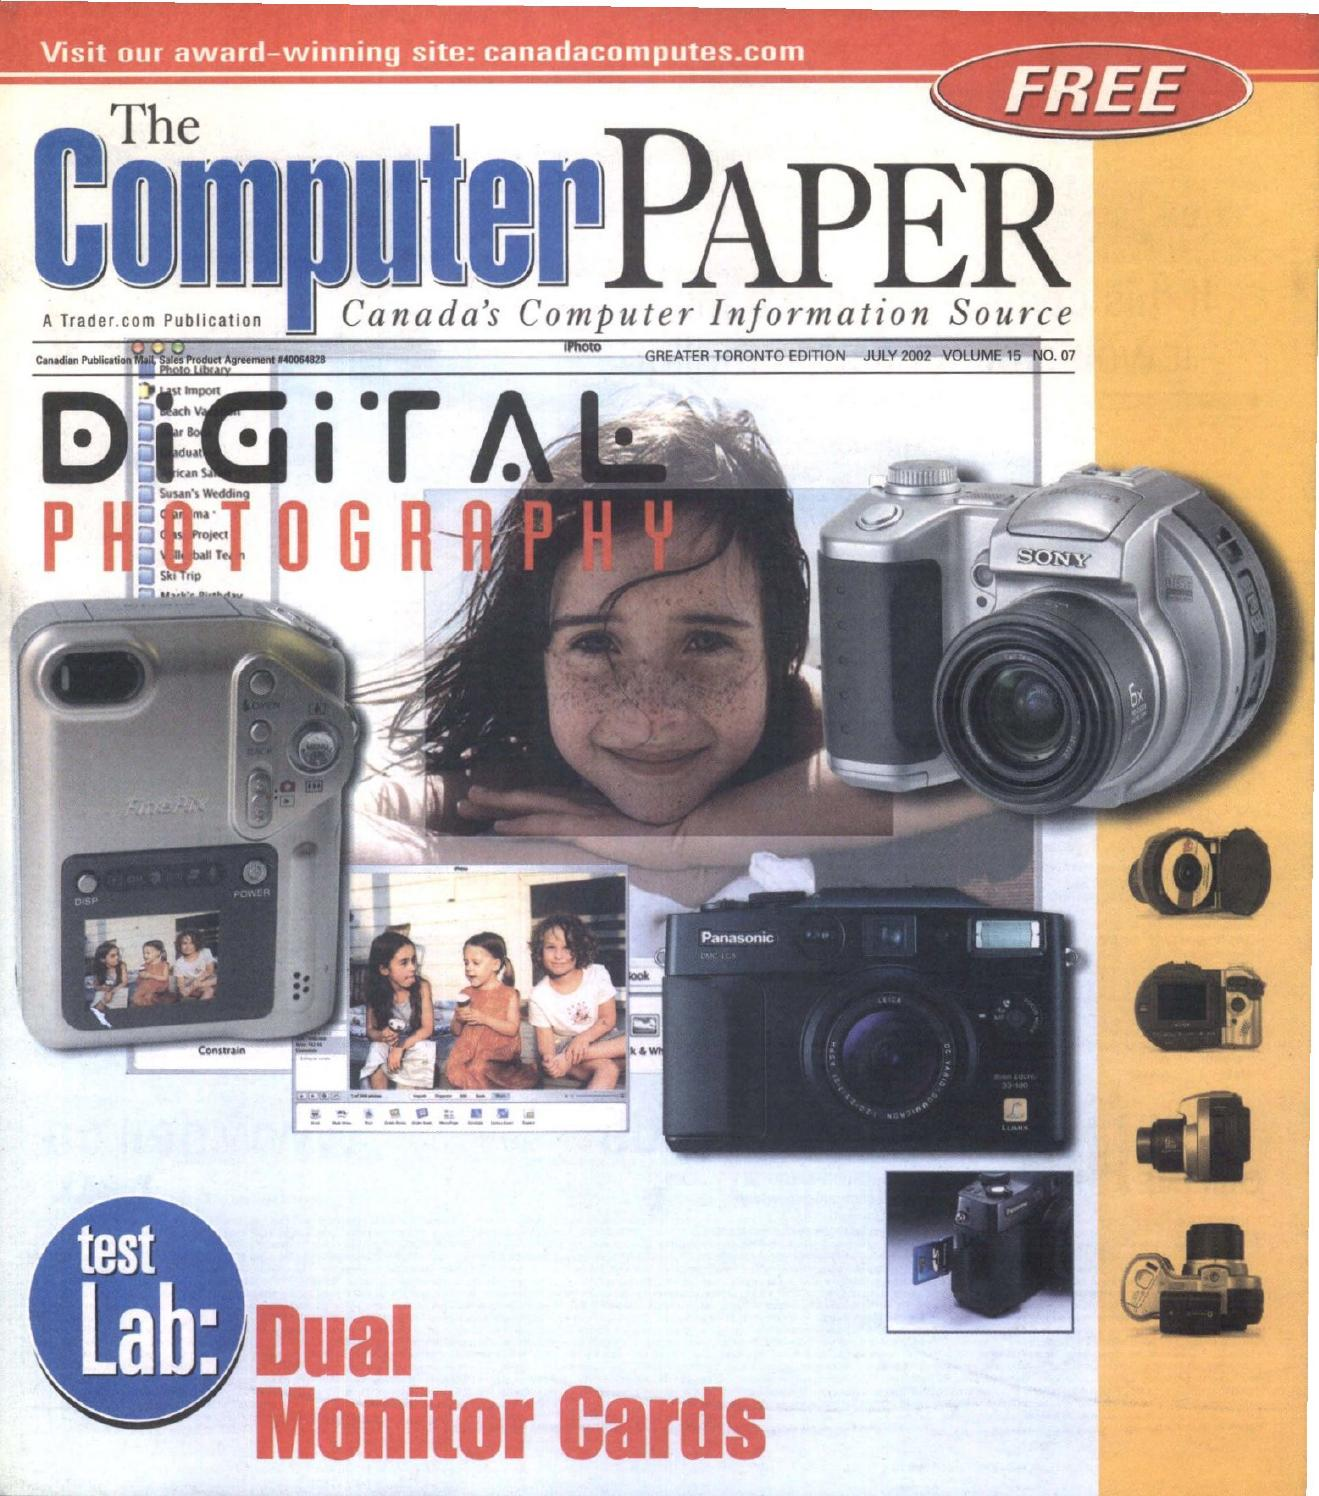 2002 07 The Computer Paper - Ontario Edition by The Computer Paper - issuu